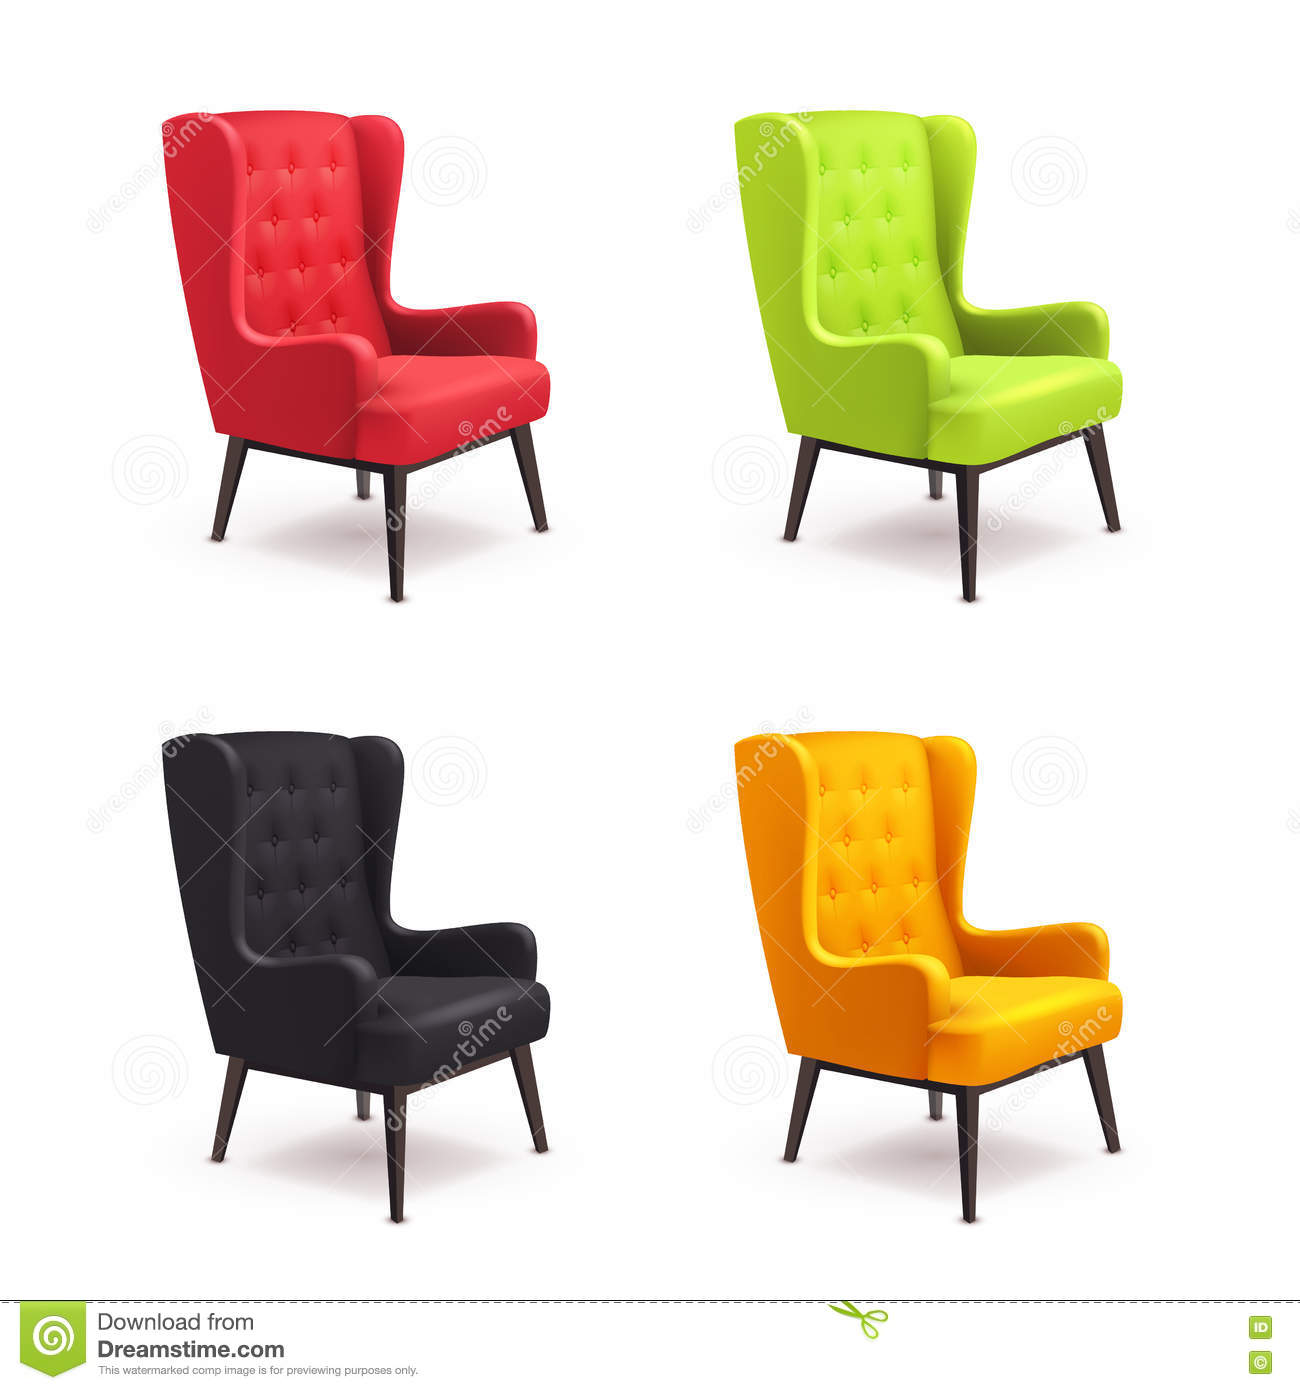 Chair realistic icon set stock vector illustration of for Different color chairs